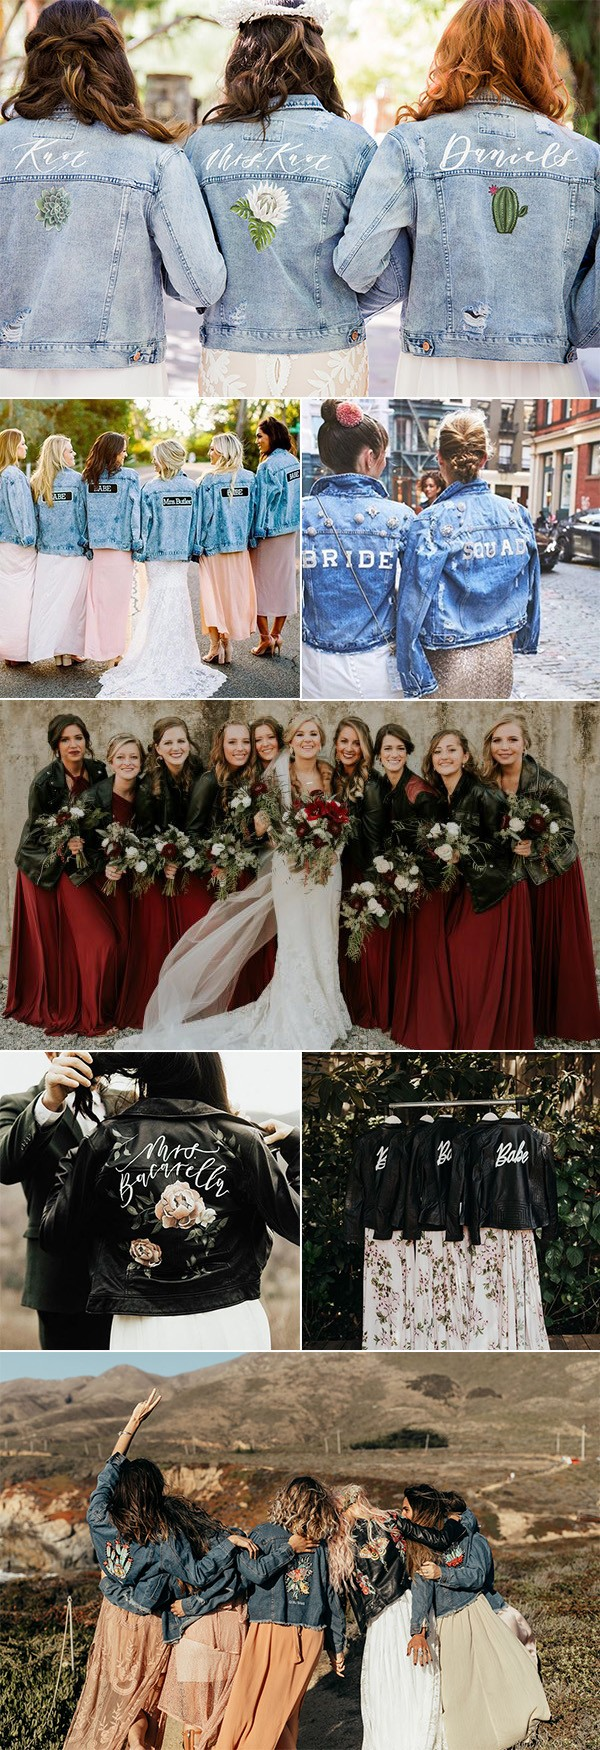 2019 trending bridal party look with jackets